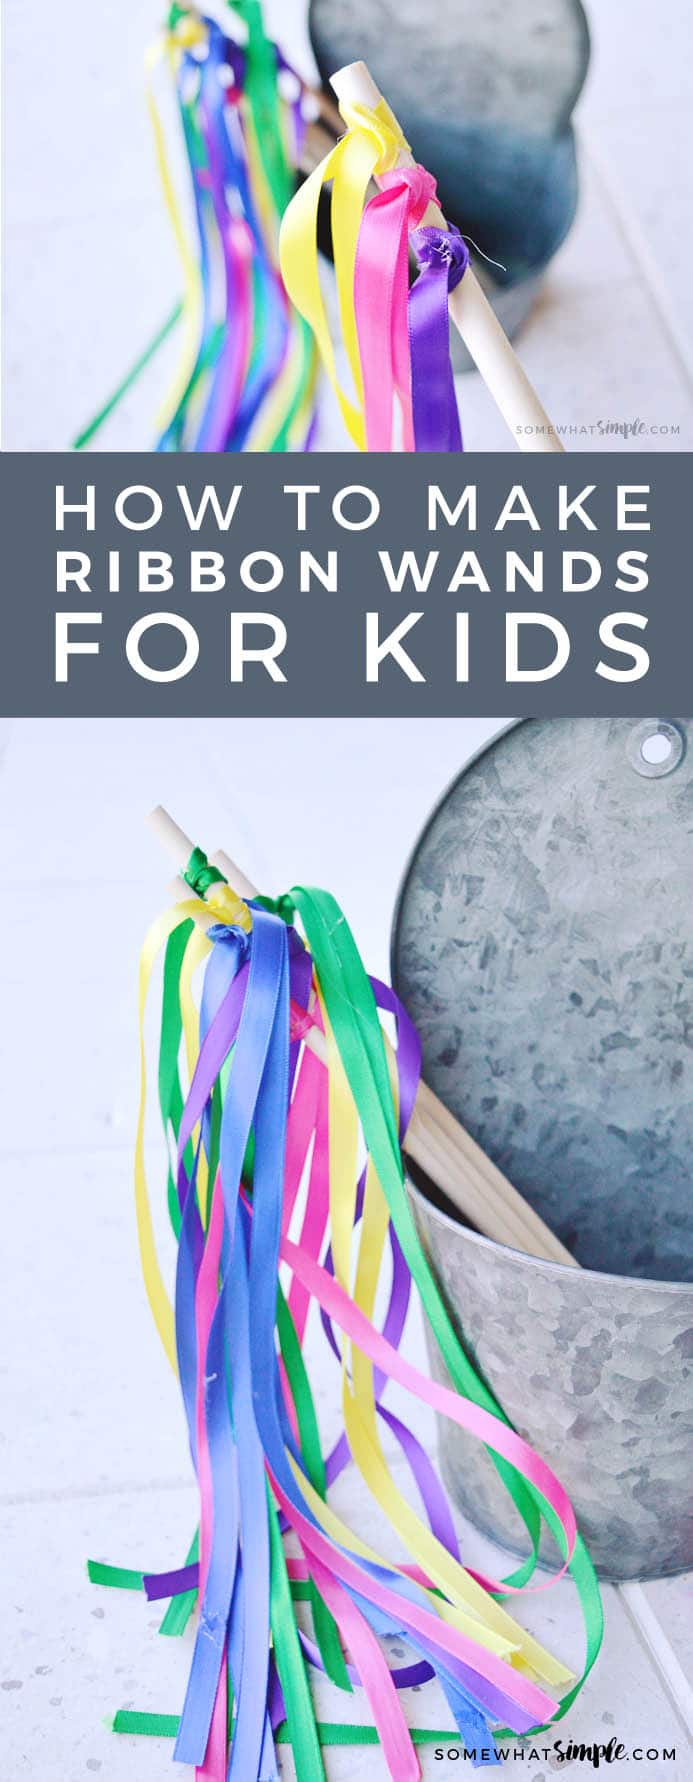 Here is a simple and easy tutorial on how to make ribbon wands that your kids will love! #ribbonwands, #howtomakeribbonwands #kidscrafts #easy #fairywand #streamerwands #wand #diywand #videotutorial